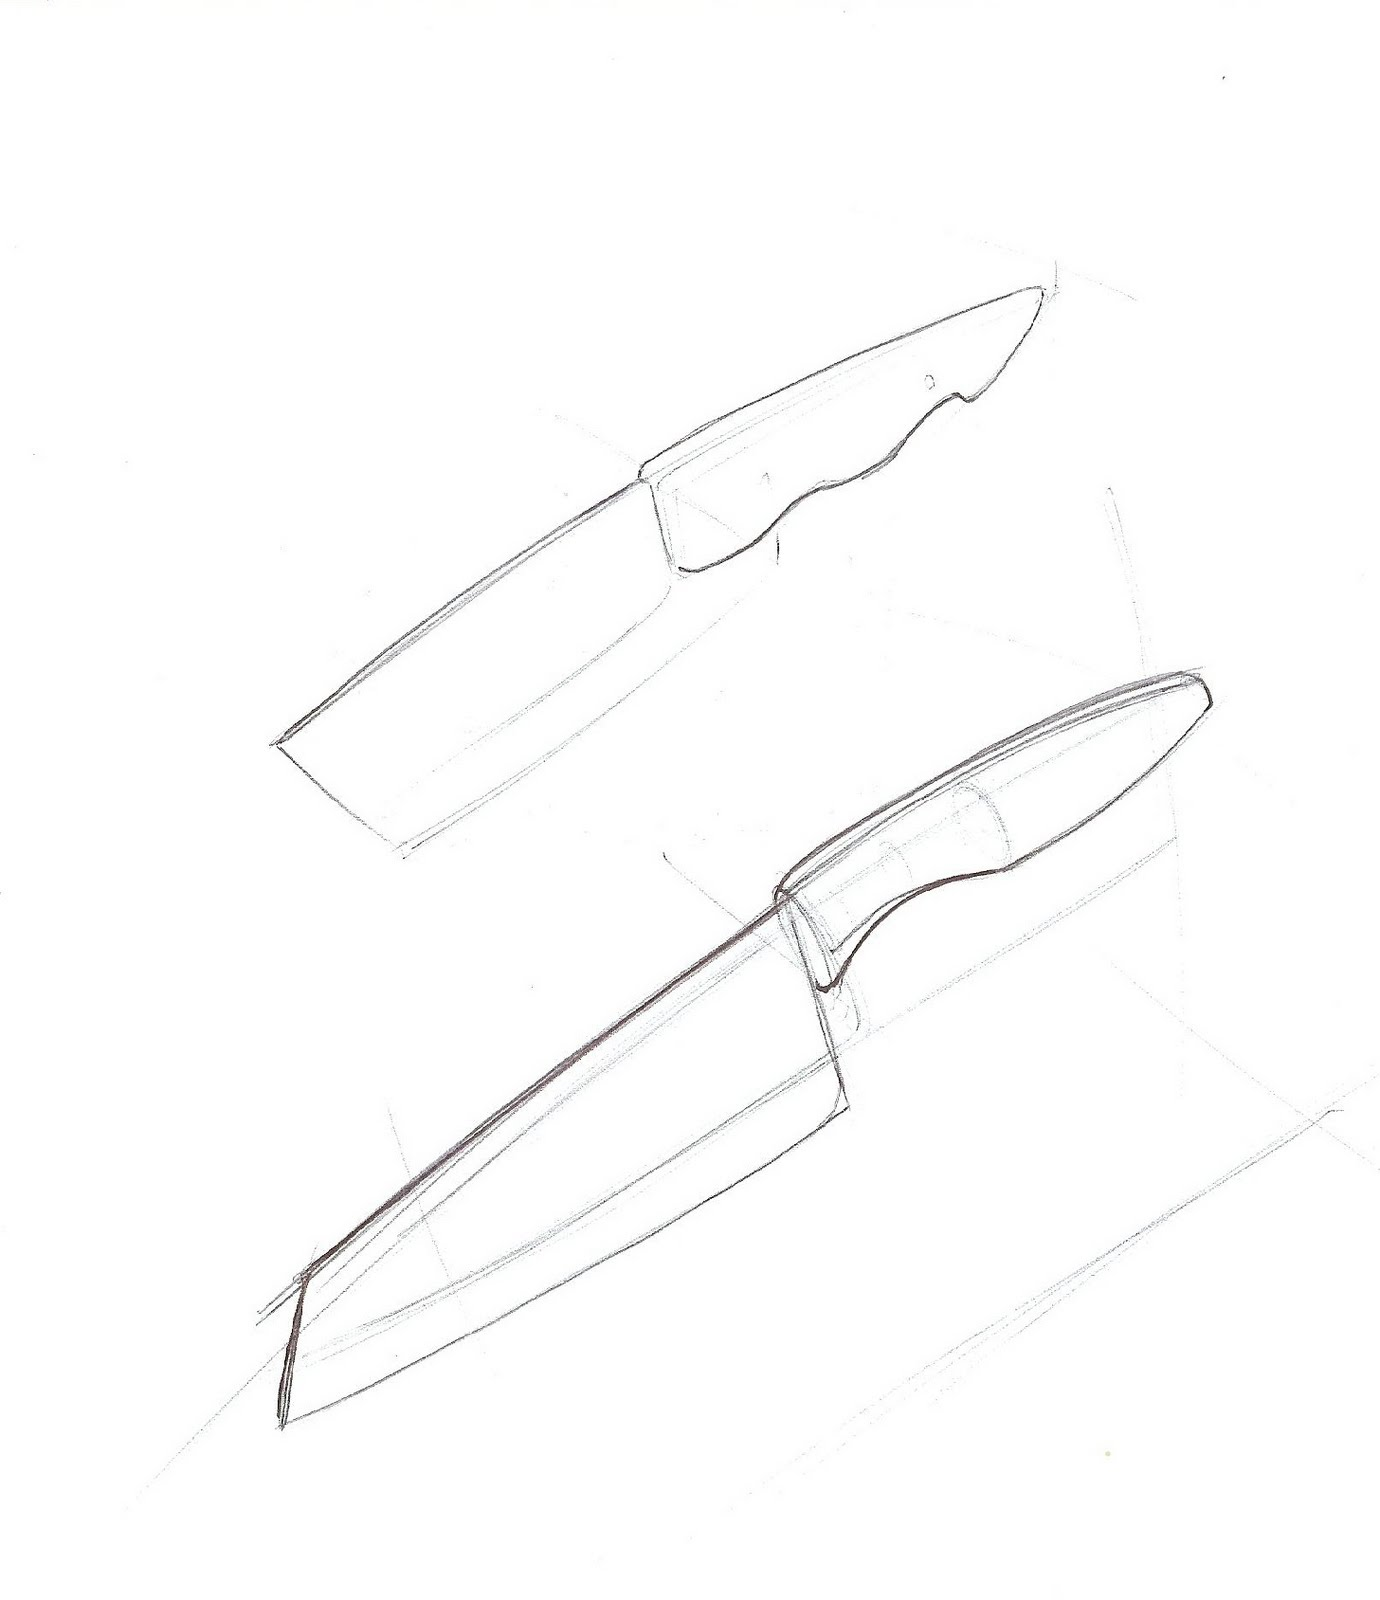 Knife Sketches